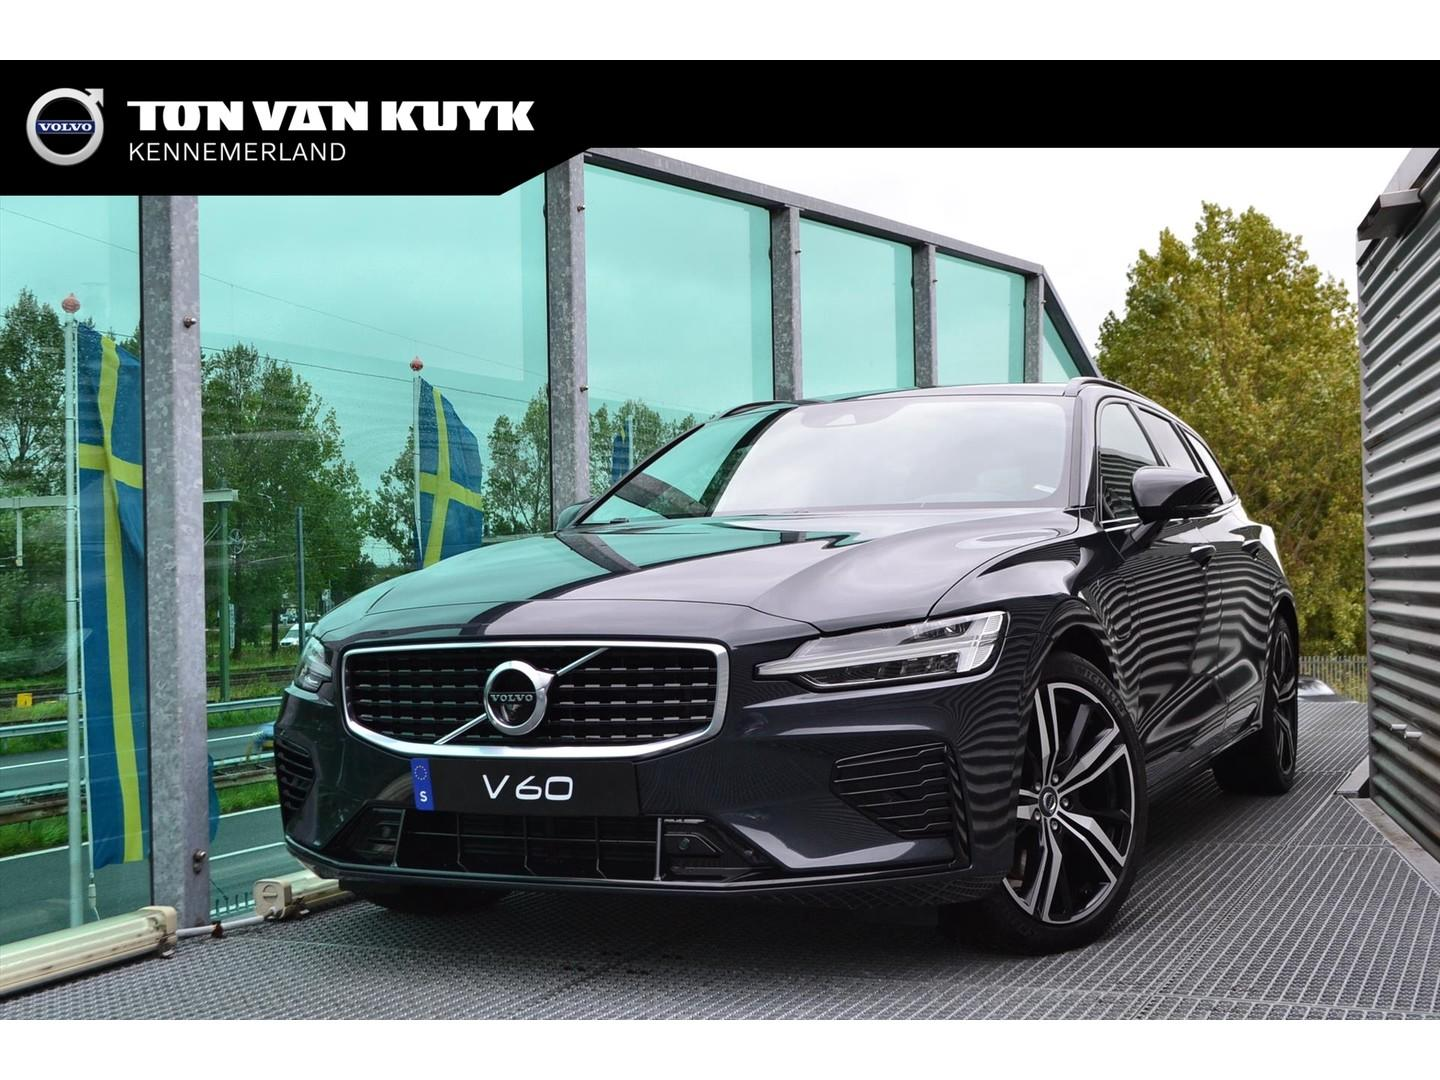 Volvo V60 New twin engine awd t8 r-design / intellisafe / 360 camera / keyl. /